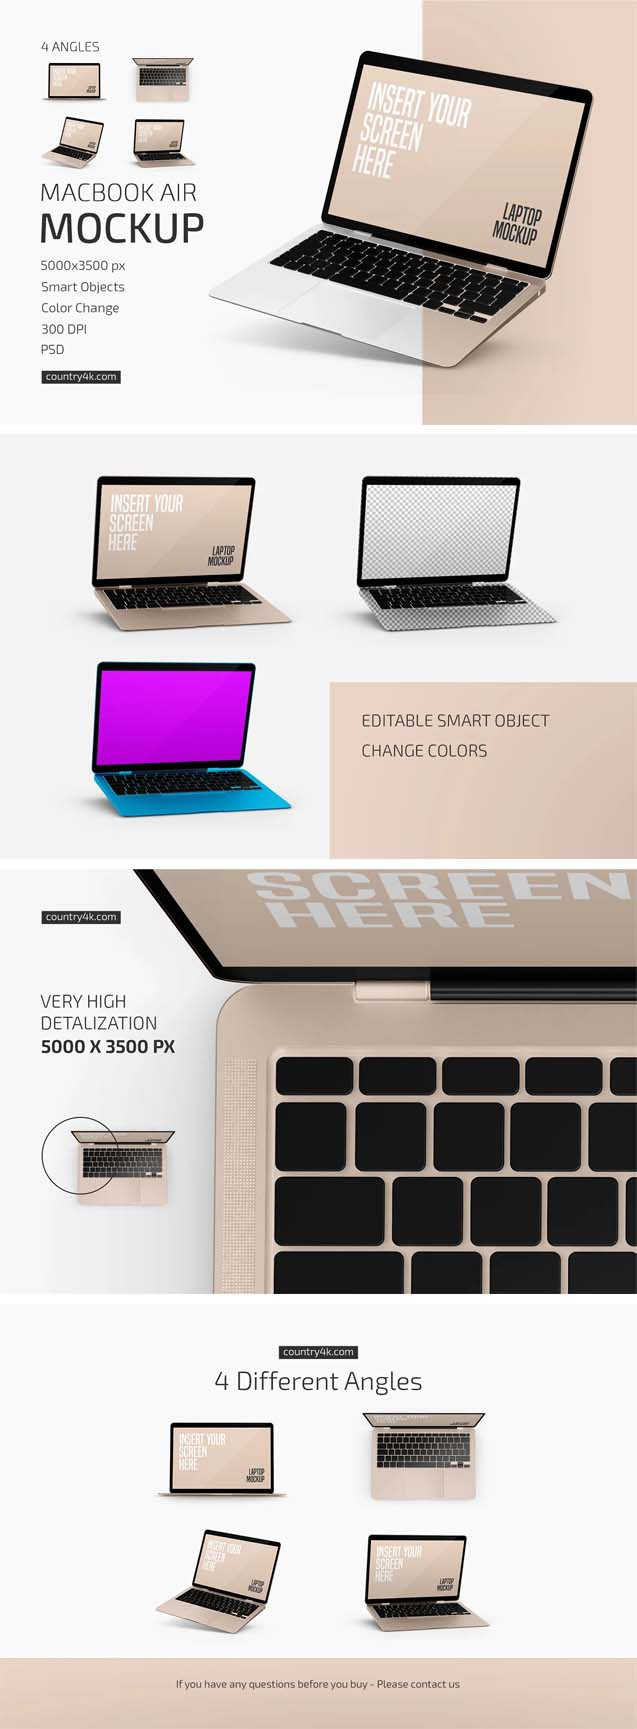 Macbook Air Mockup Set